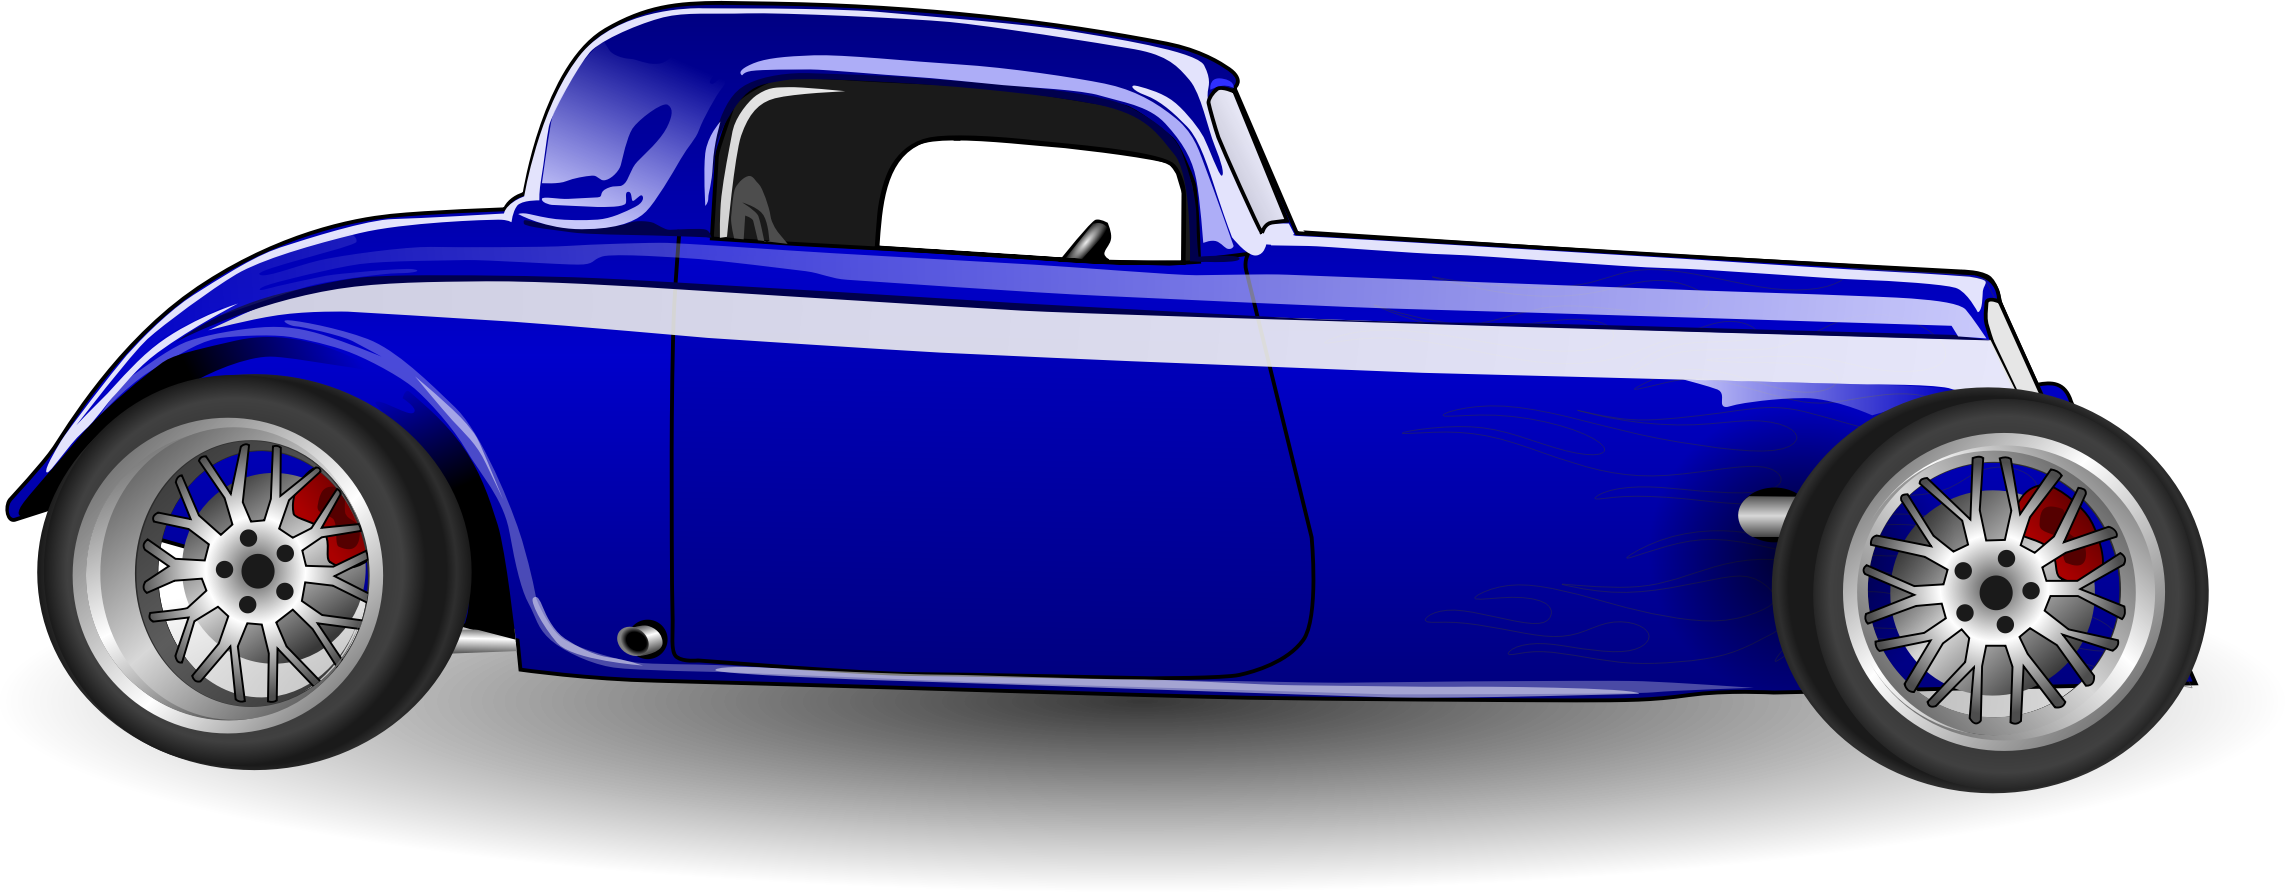 Hot Rod svg #11, Download drawings